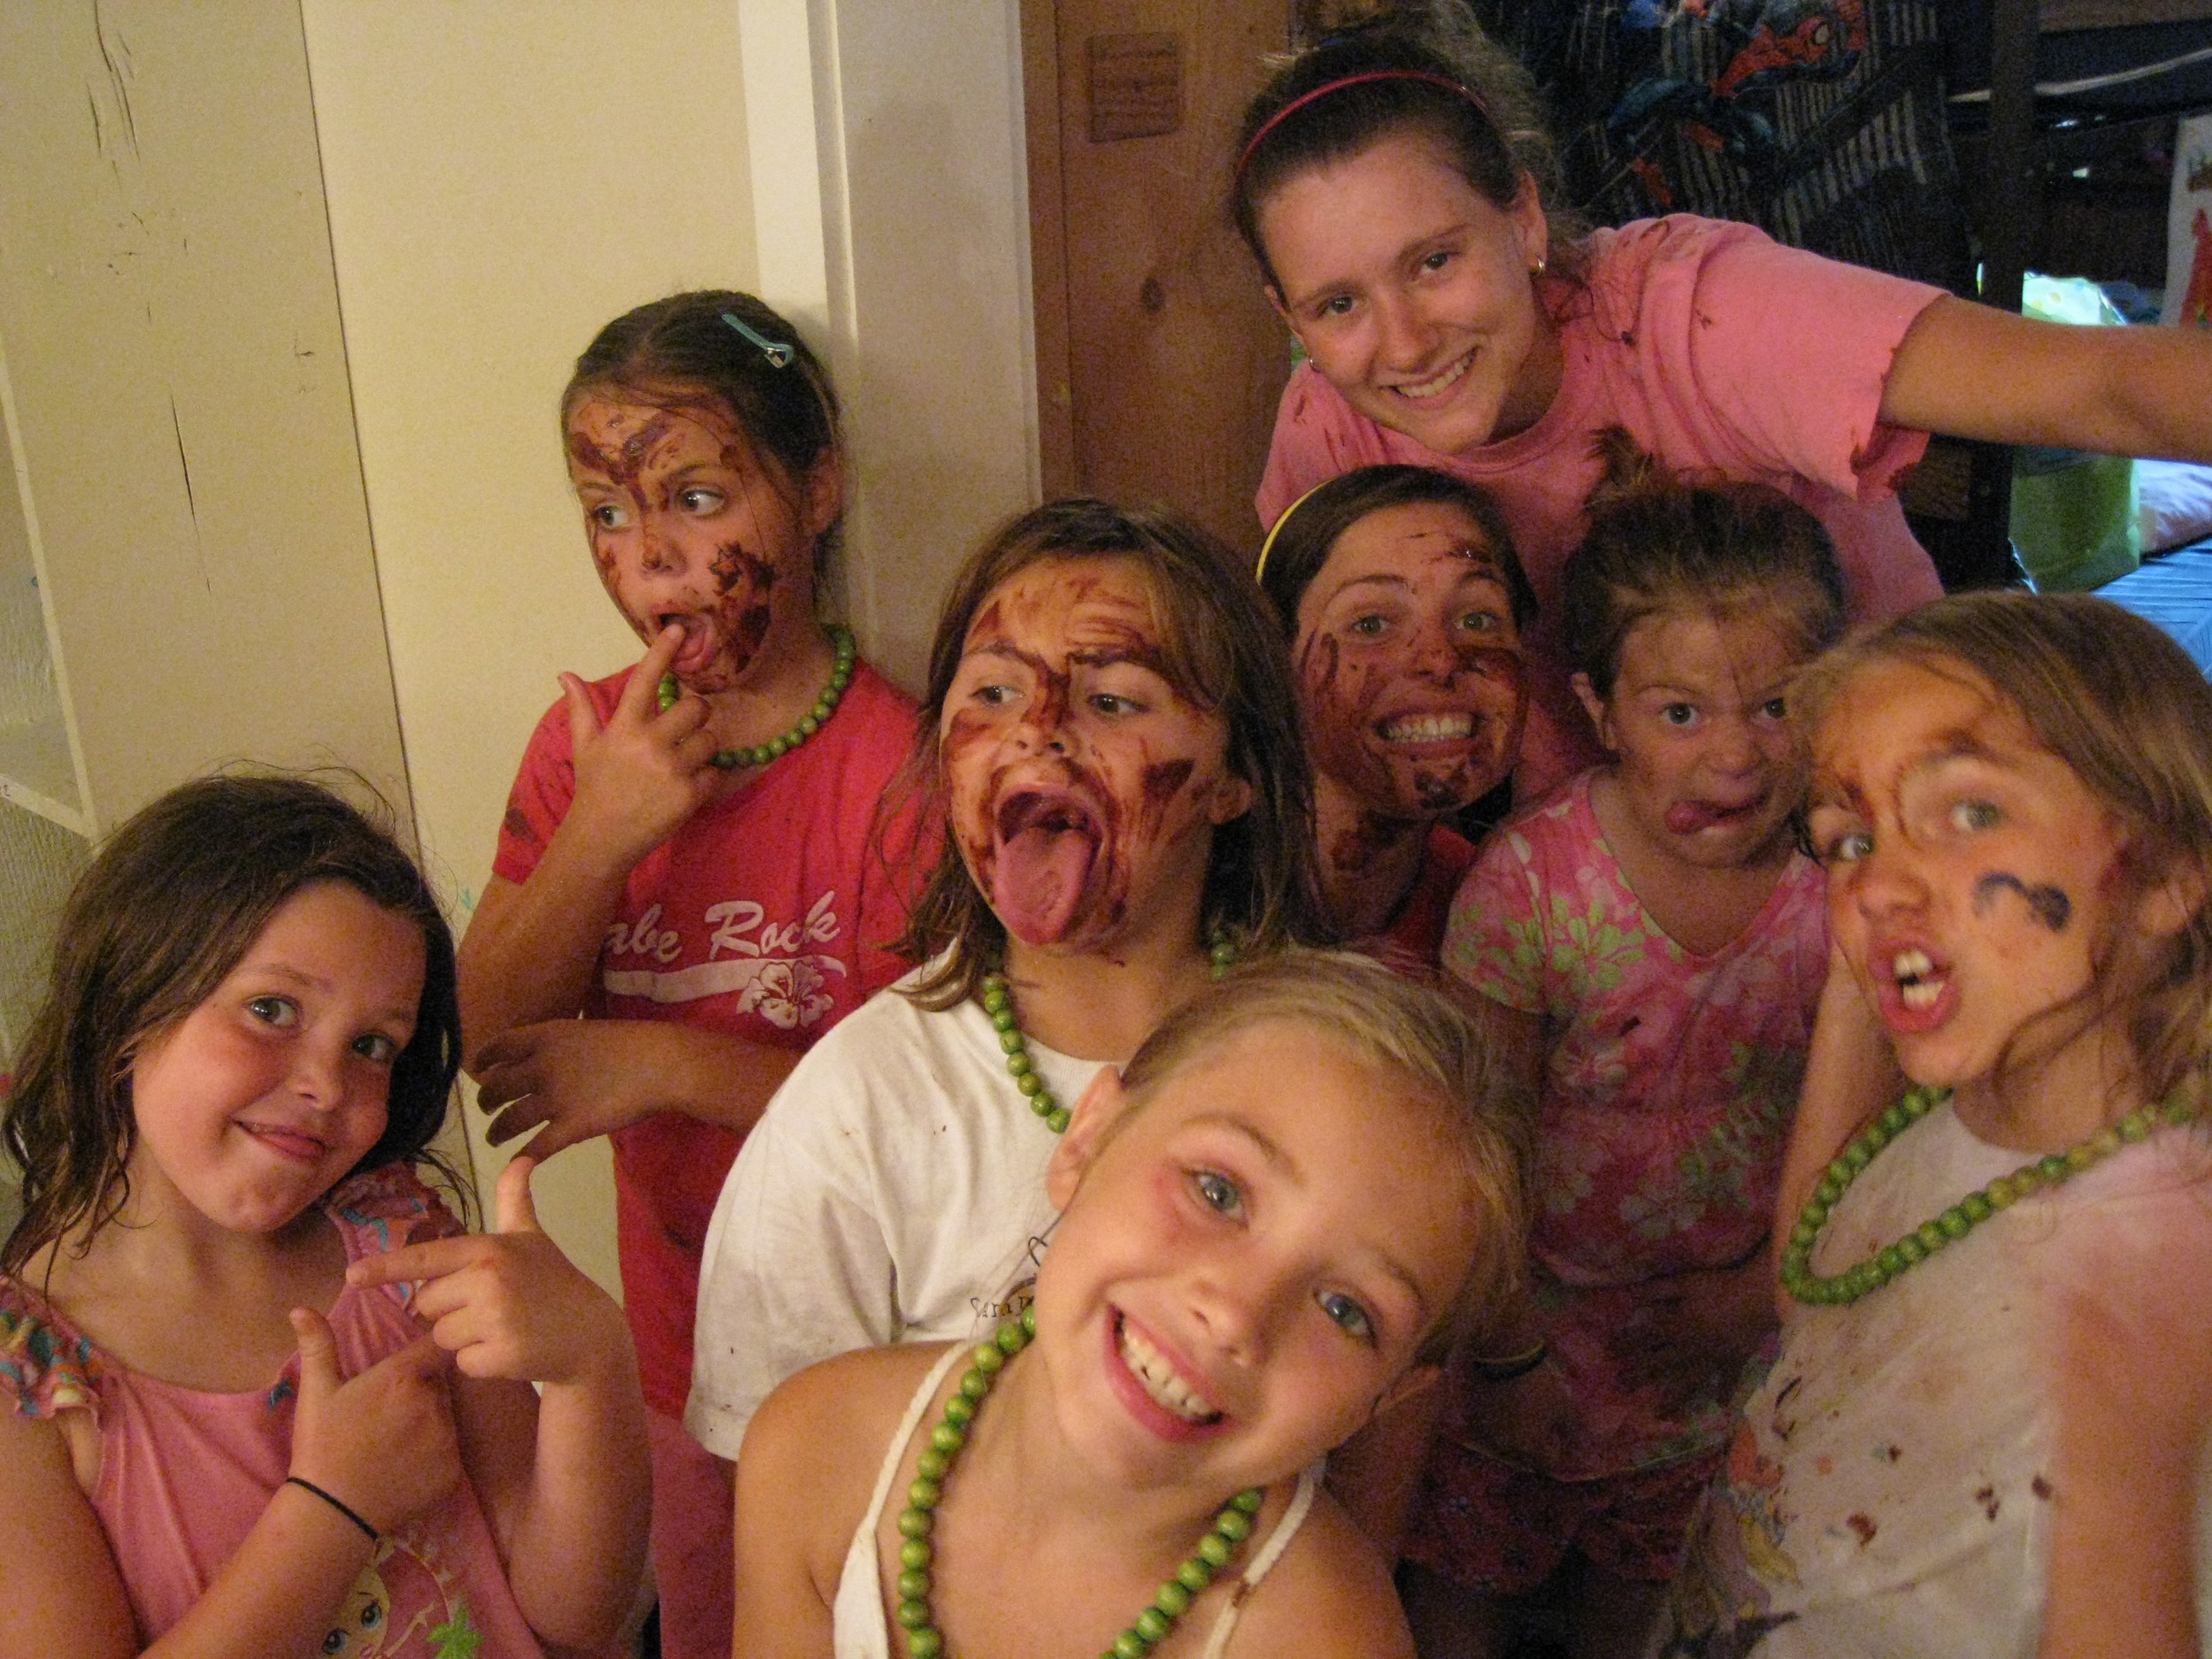 Chocolate fountains are for more than dessert at Kamp! And those faces are so cute I couldn't get mad when they smeared chocolate all over my face... and neck... and clothes...